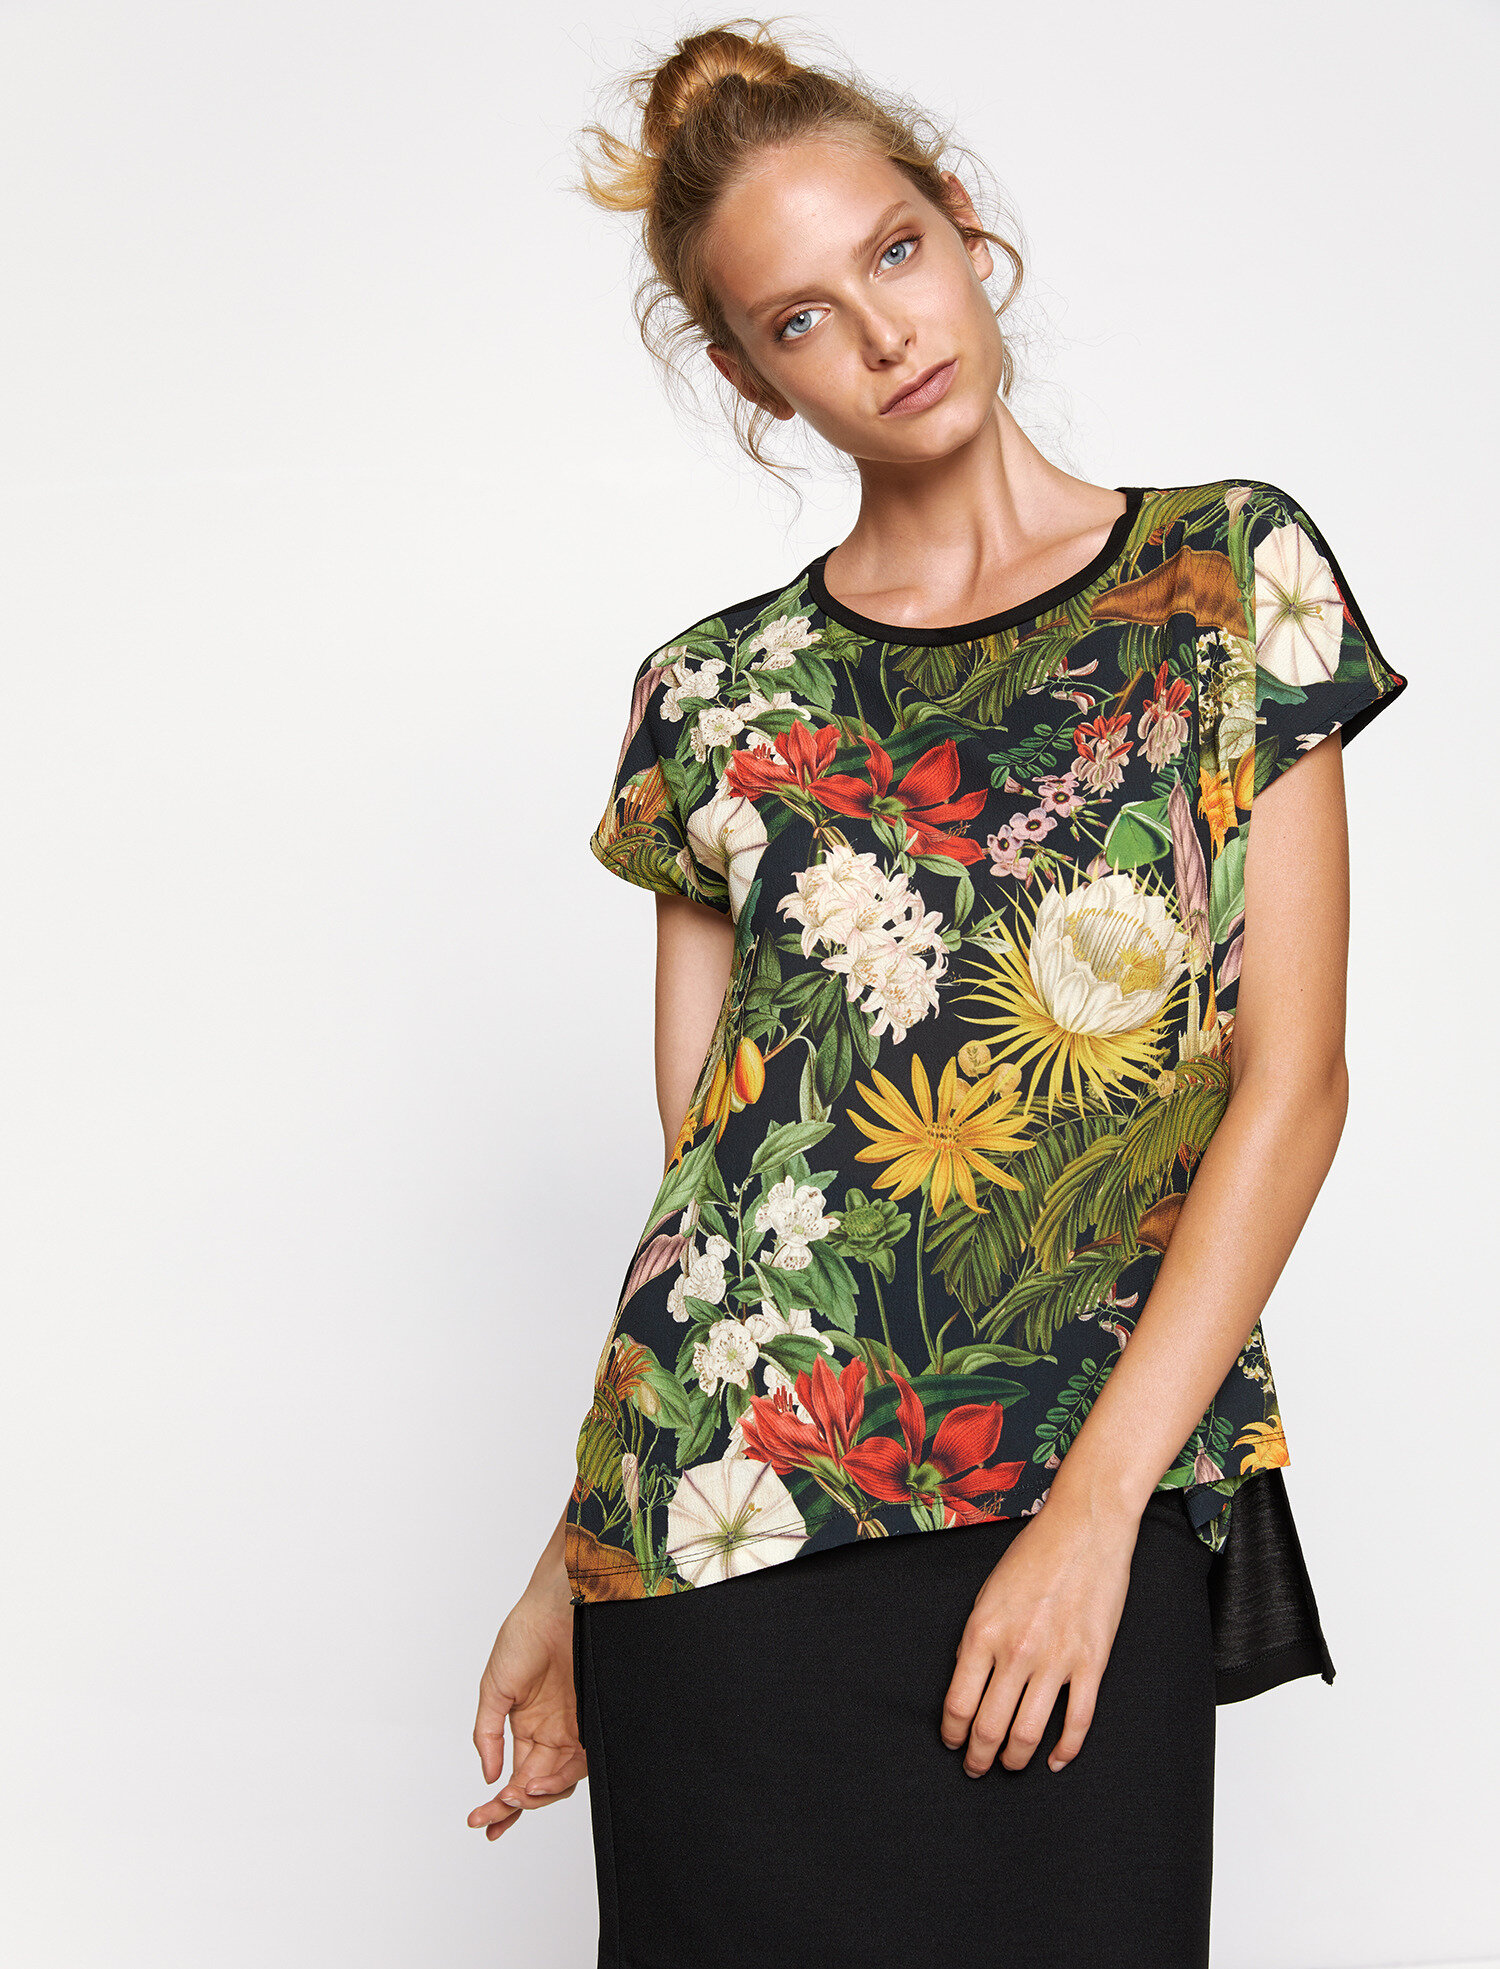 floral t-shirt. pic 1 · pic 2 ...